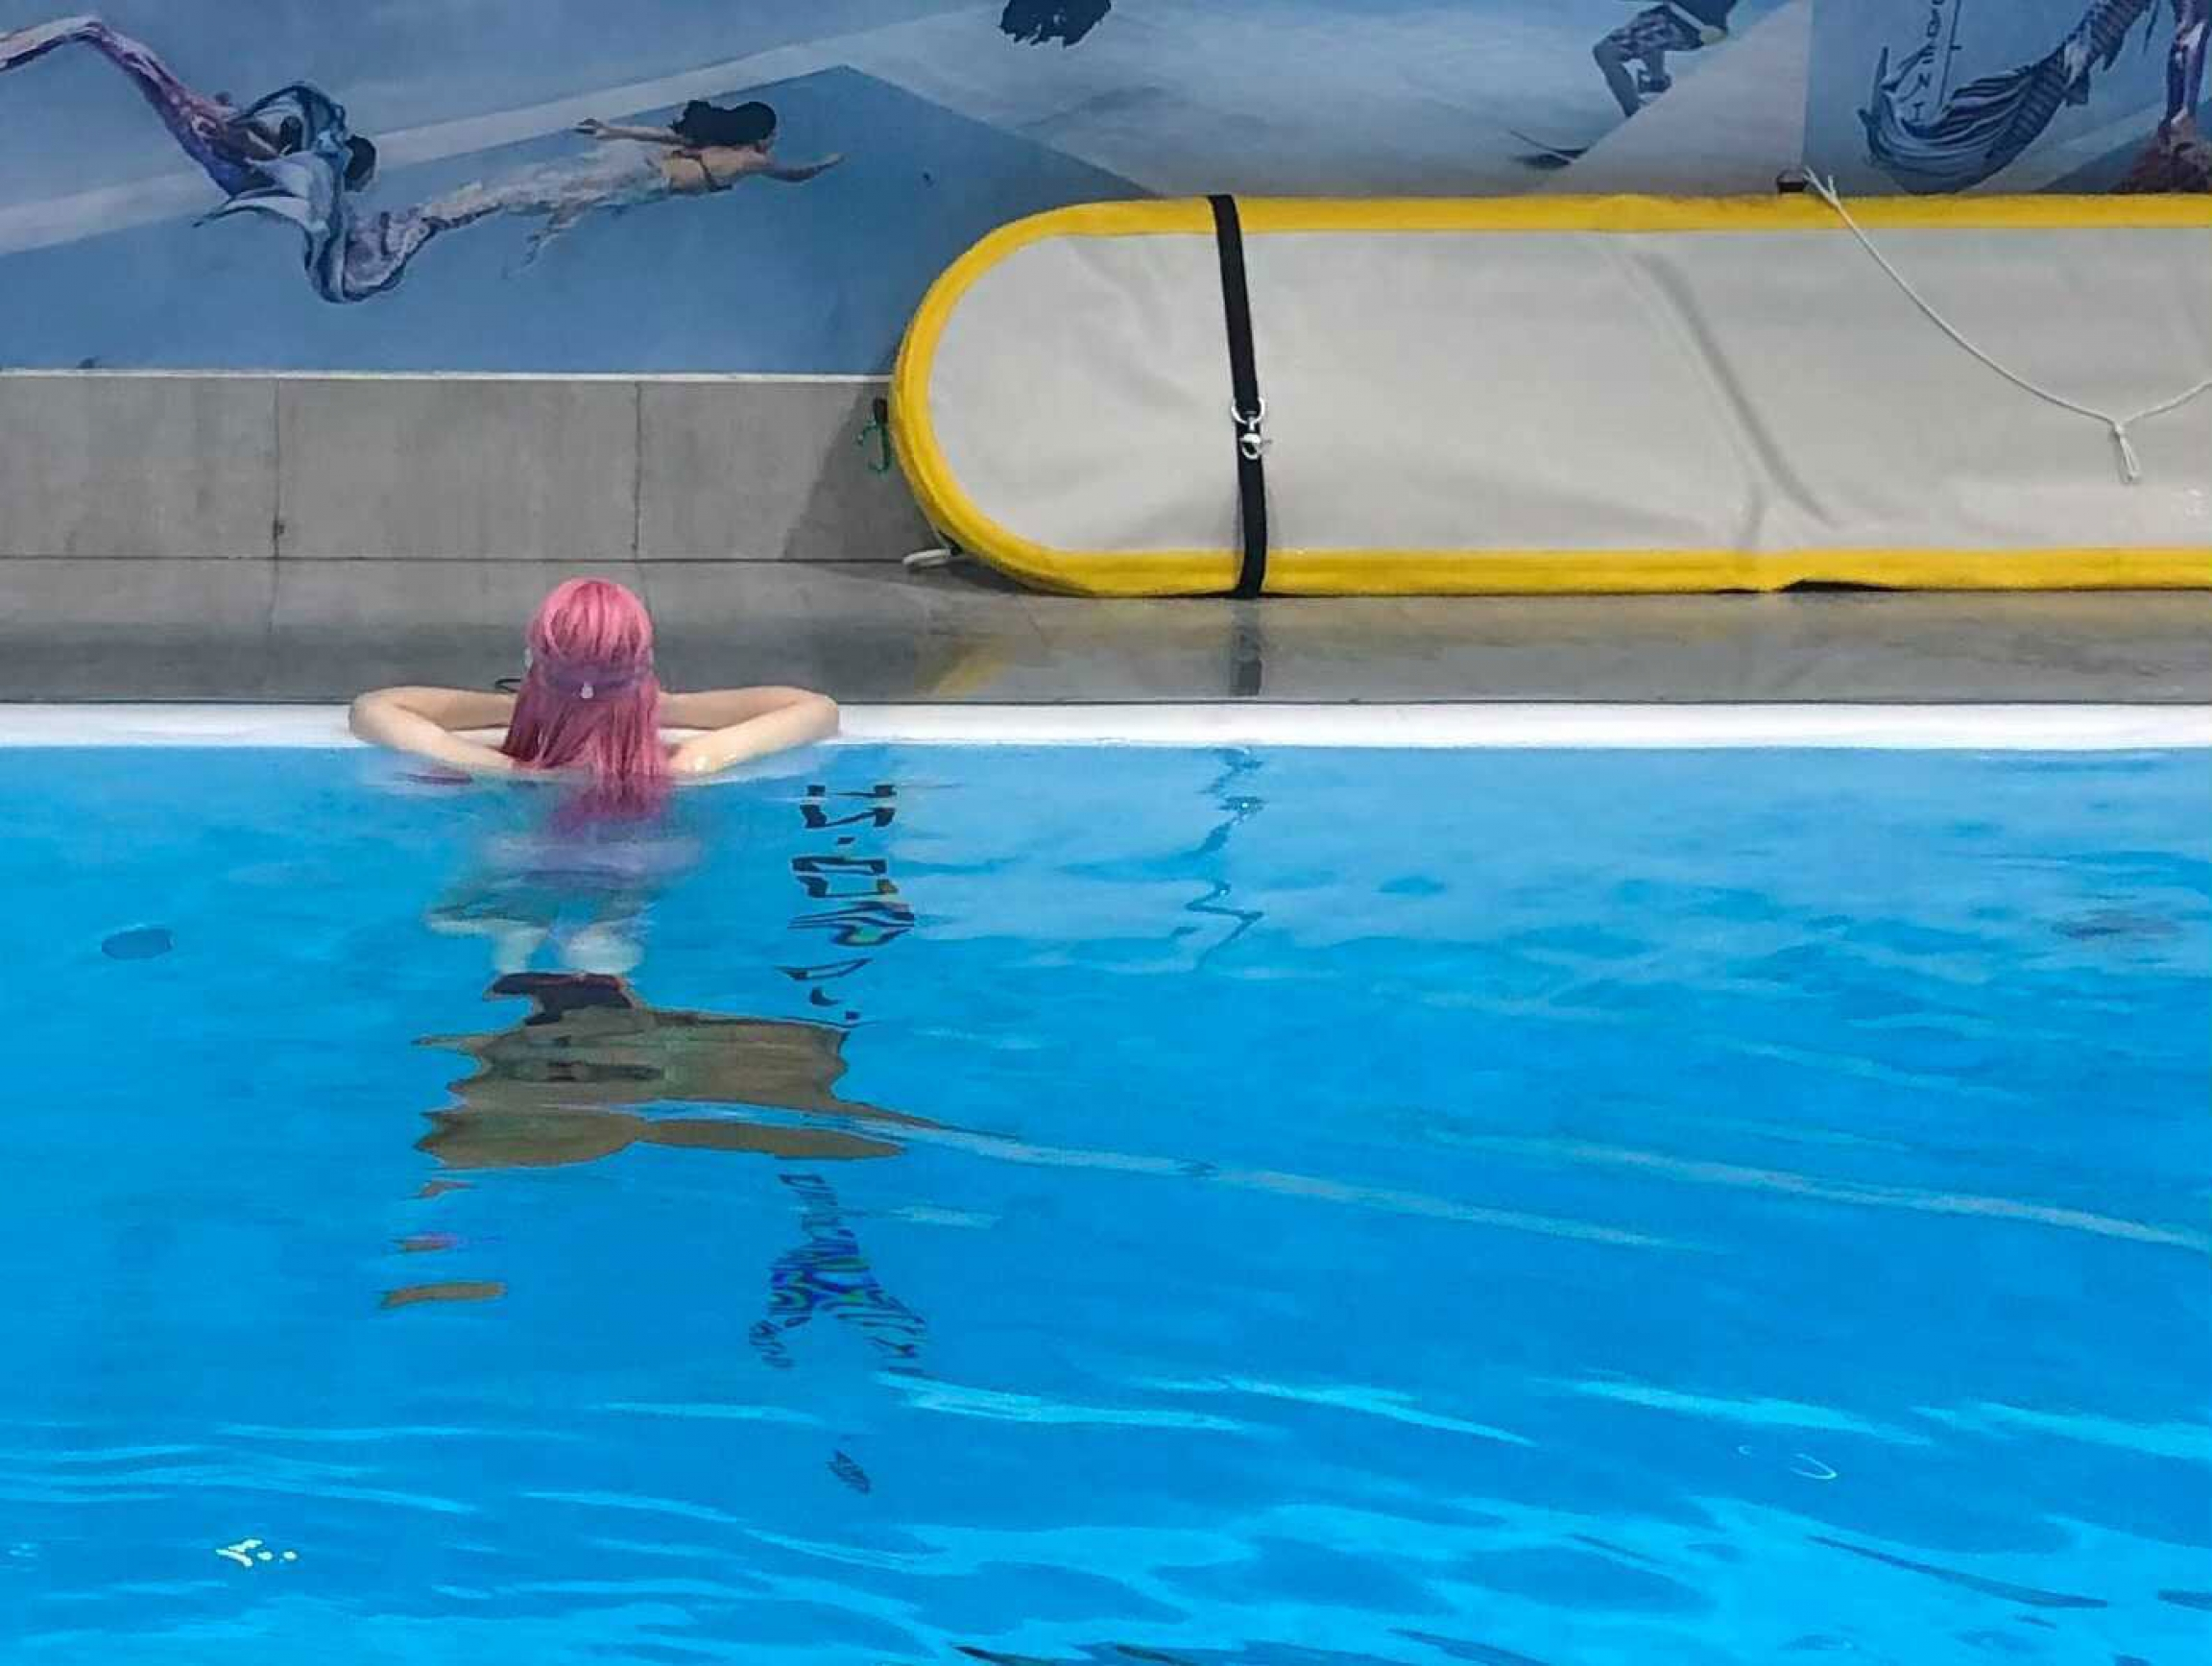 Chen Menke taking a rest from training to be a mermaid instructor.